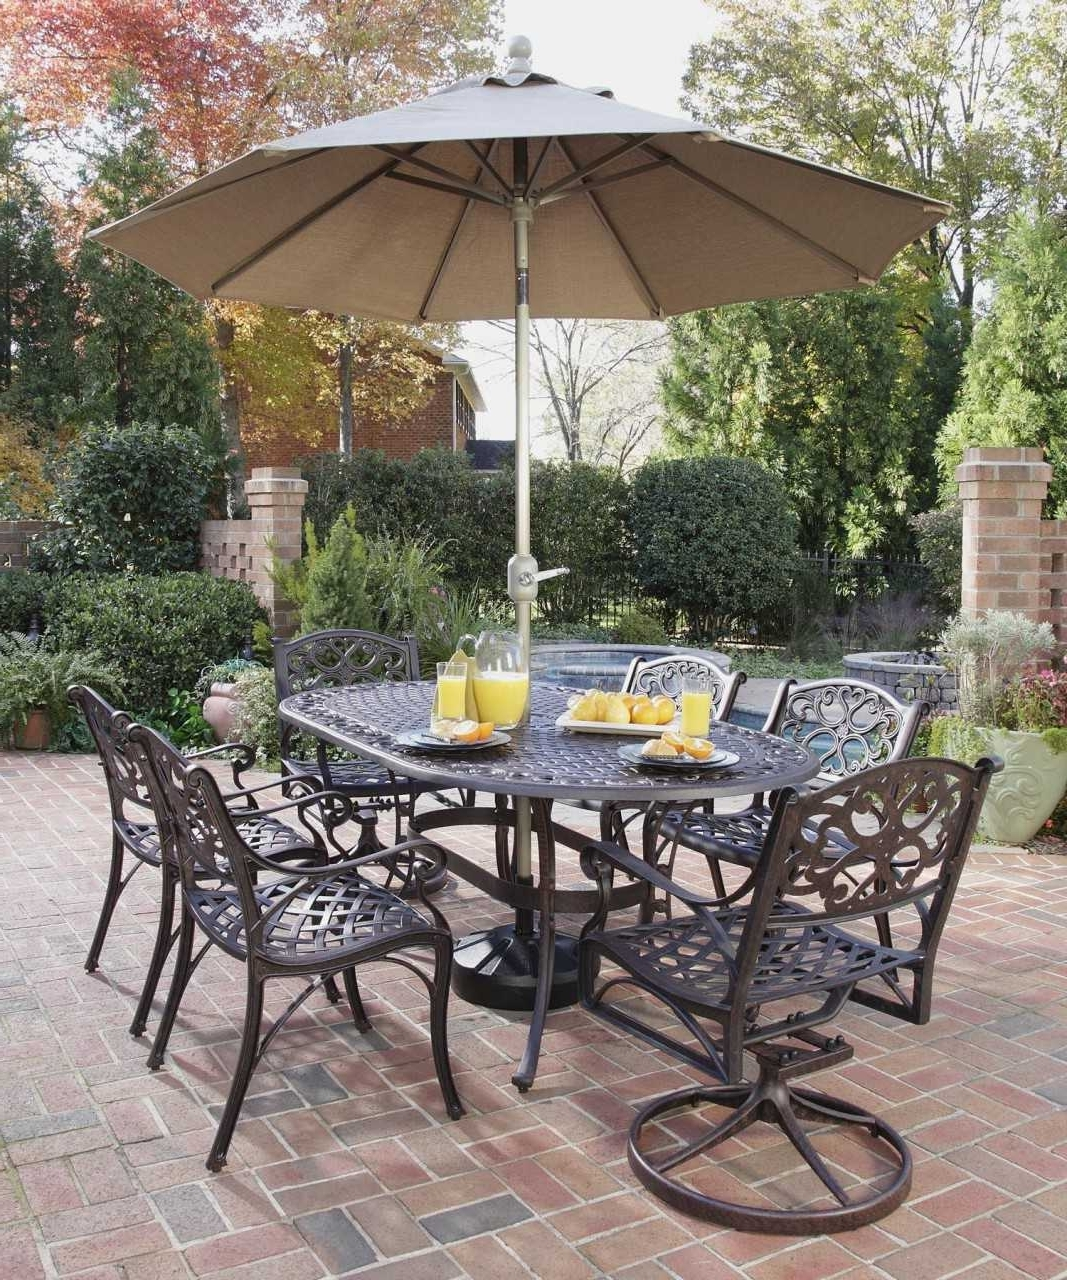 Best And Newest Fascinating Patio Table Sets With Umbrella Trends Including Cheap Inside Patio Table And Chairs With Umbrellas (View 2 of 20)